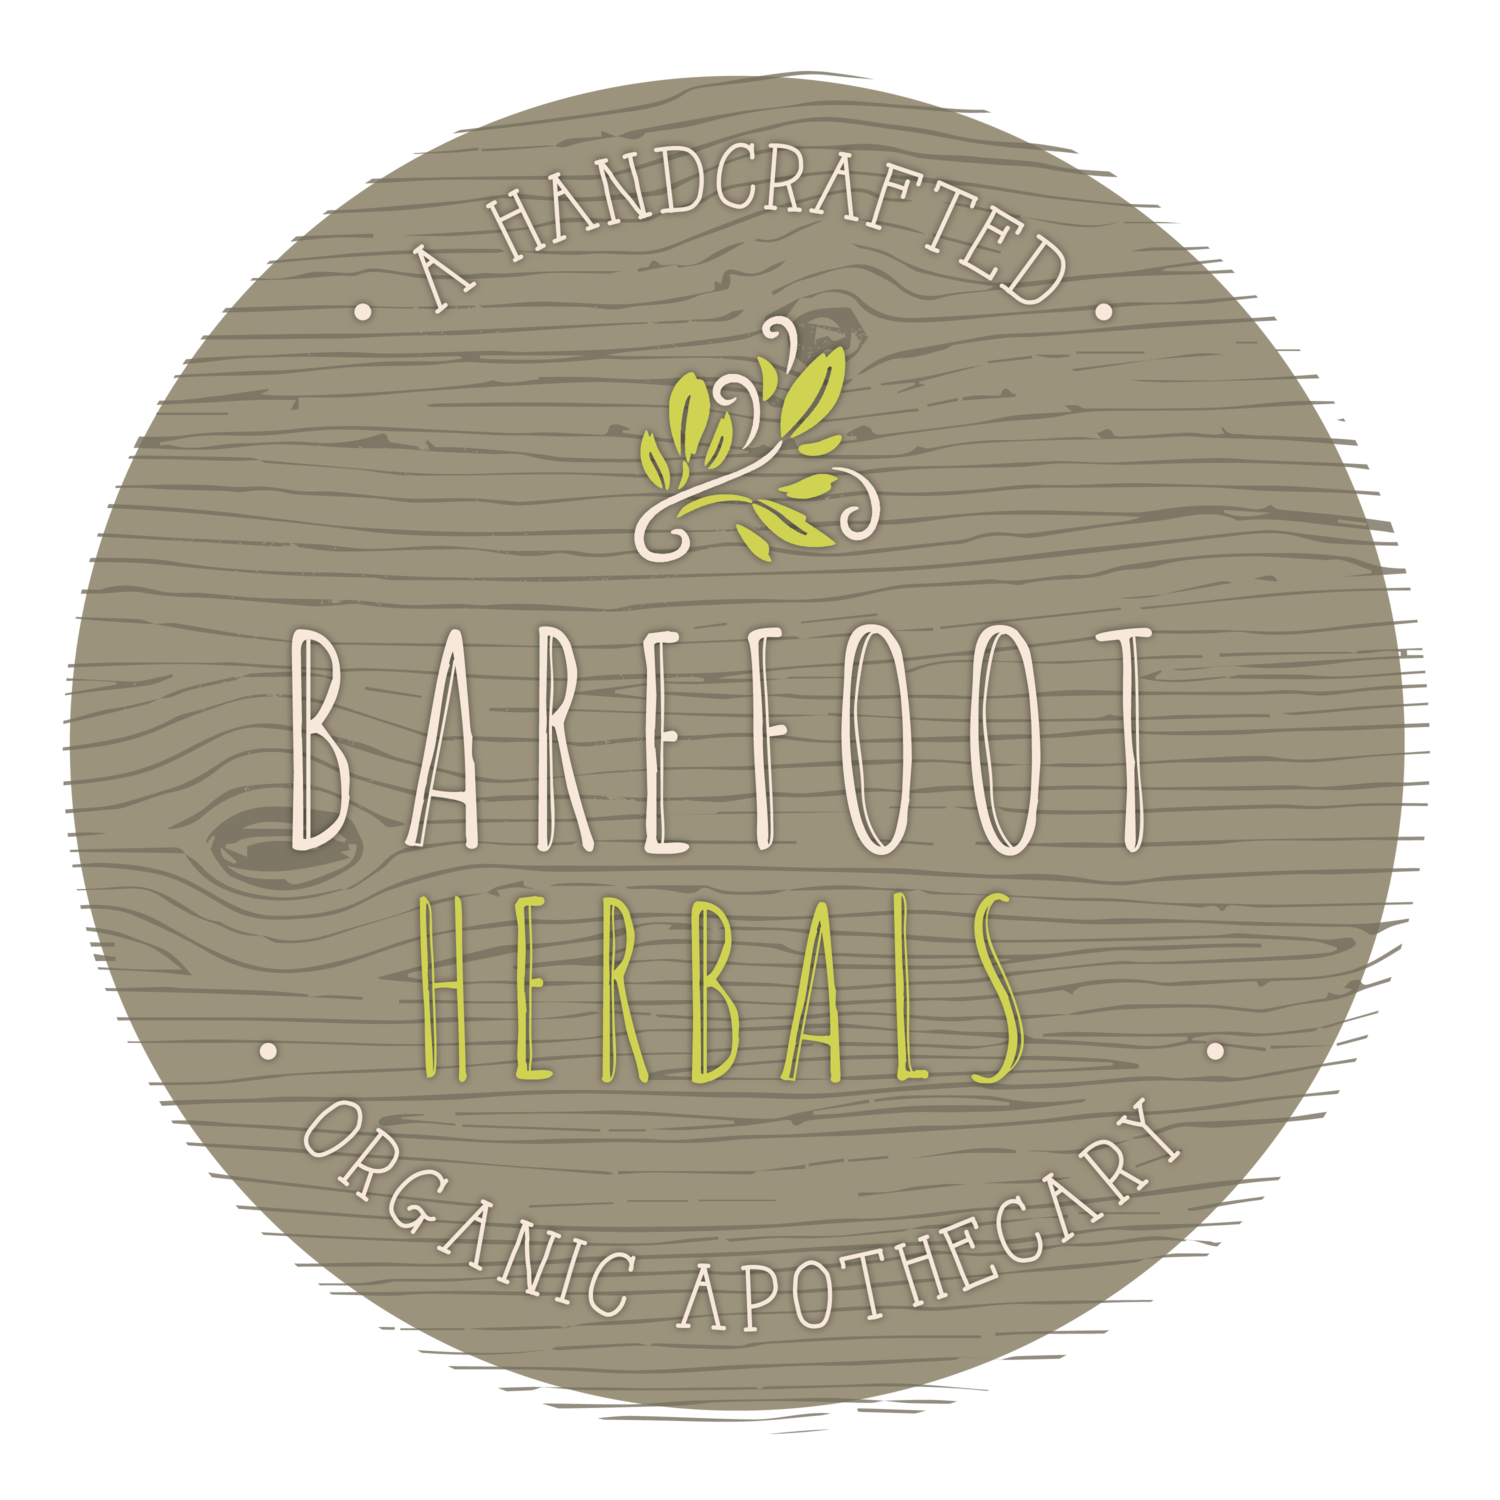 BarefootHerbals-300dpi-01.png